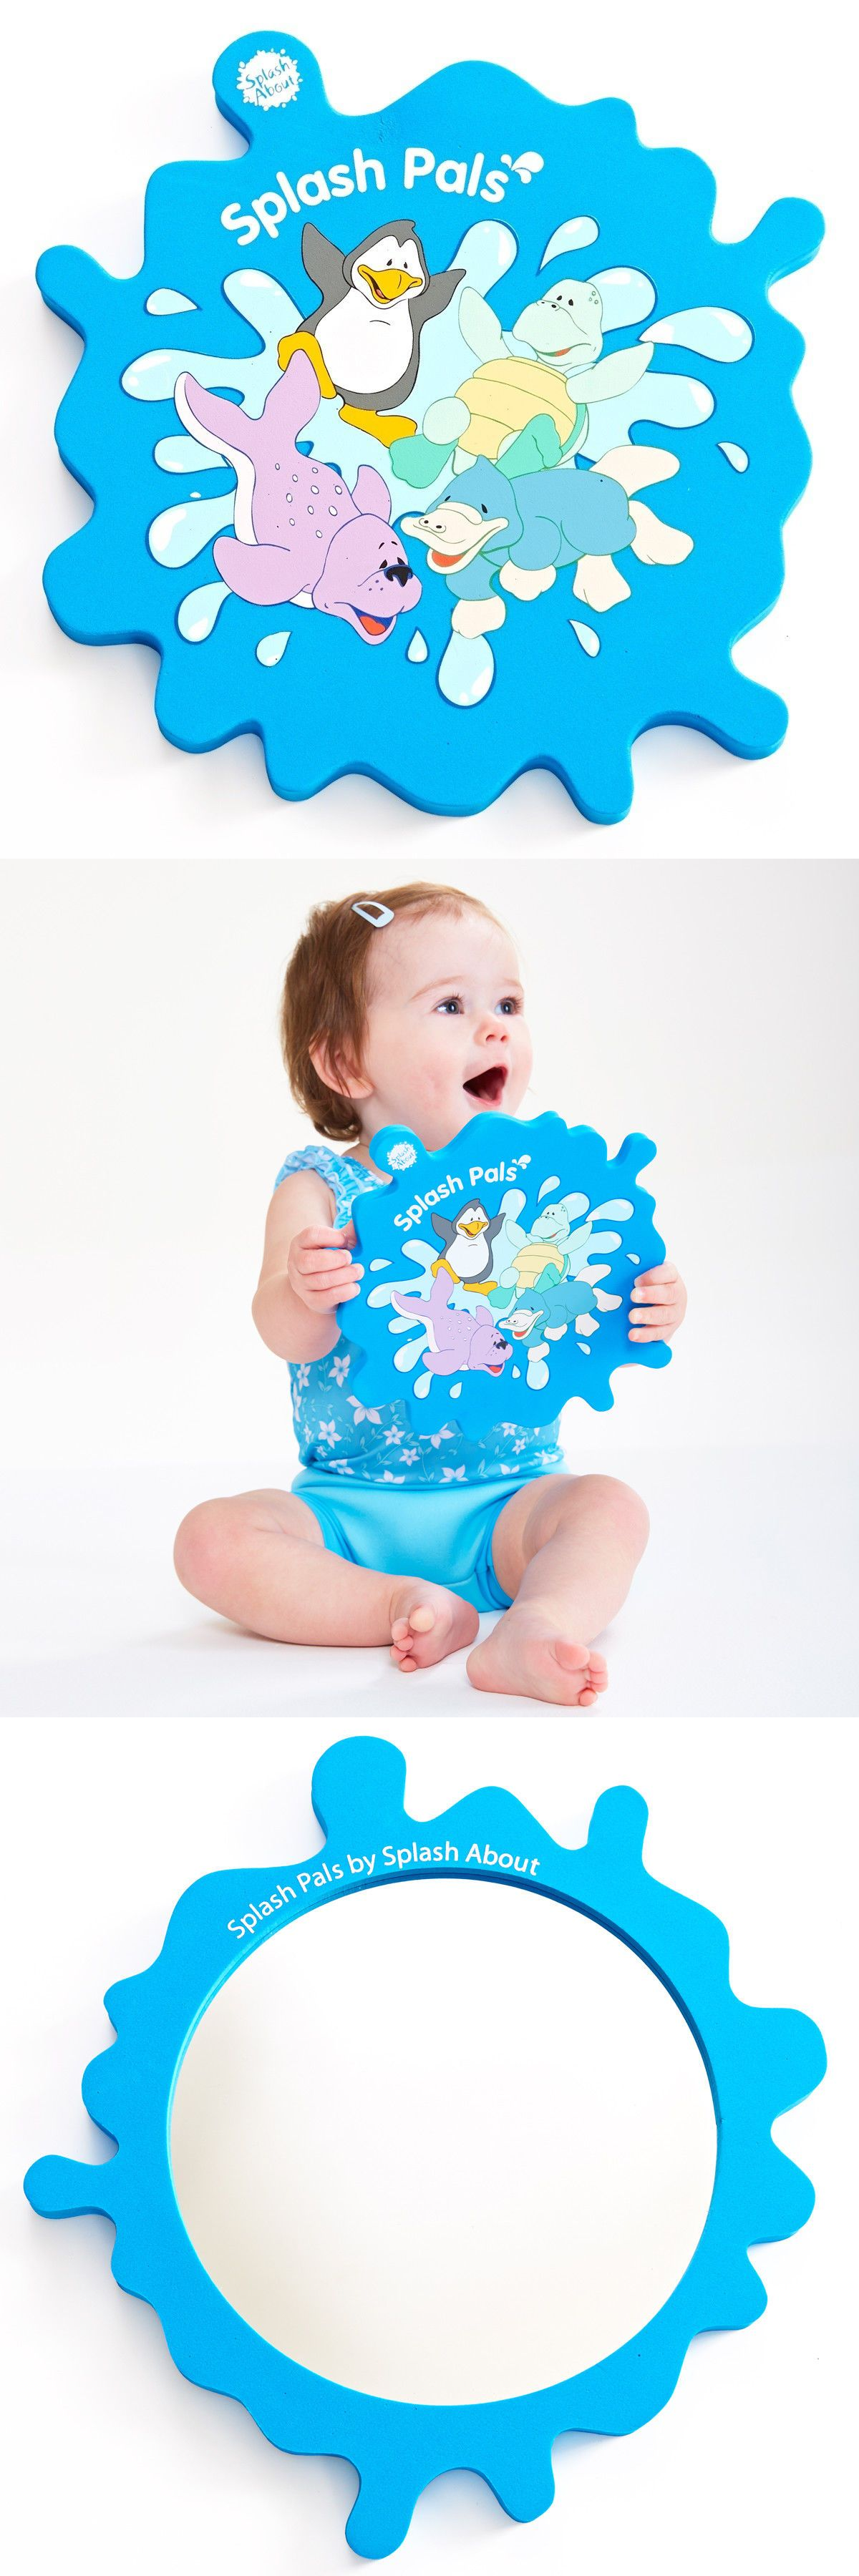 Bathing Accessories 100221: Splash About Baby And Toddler Bath ...